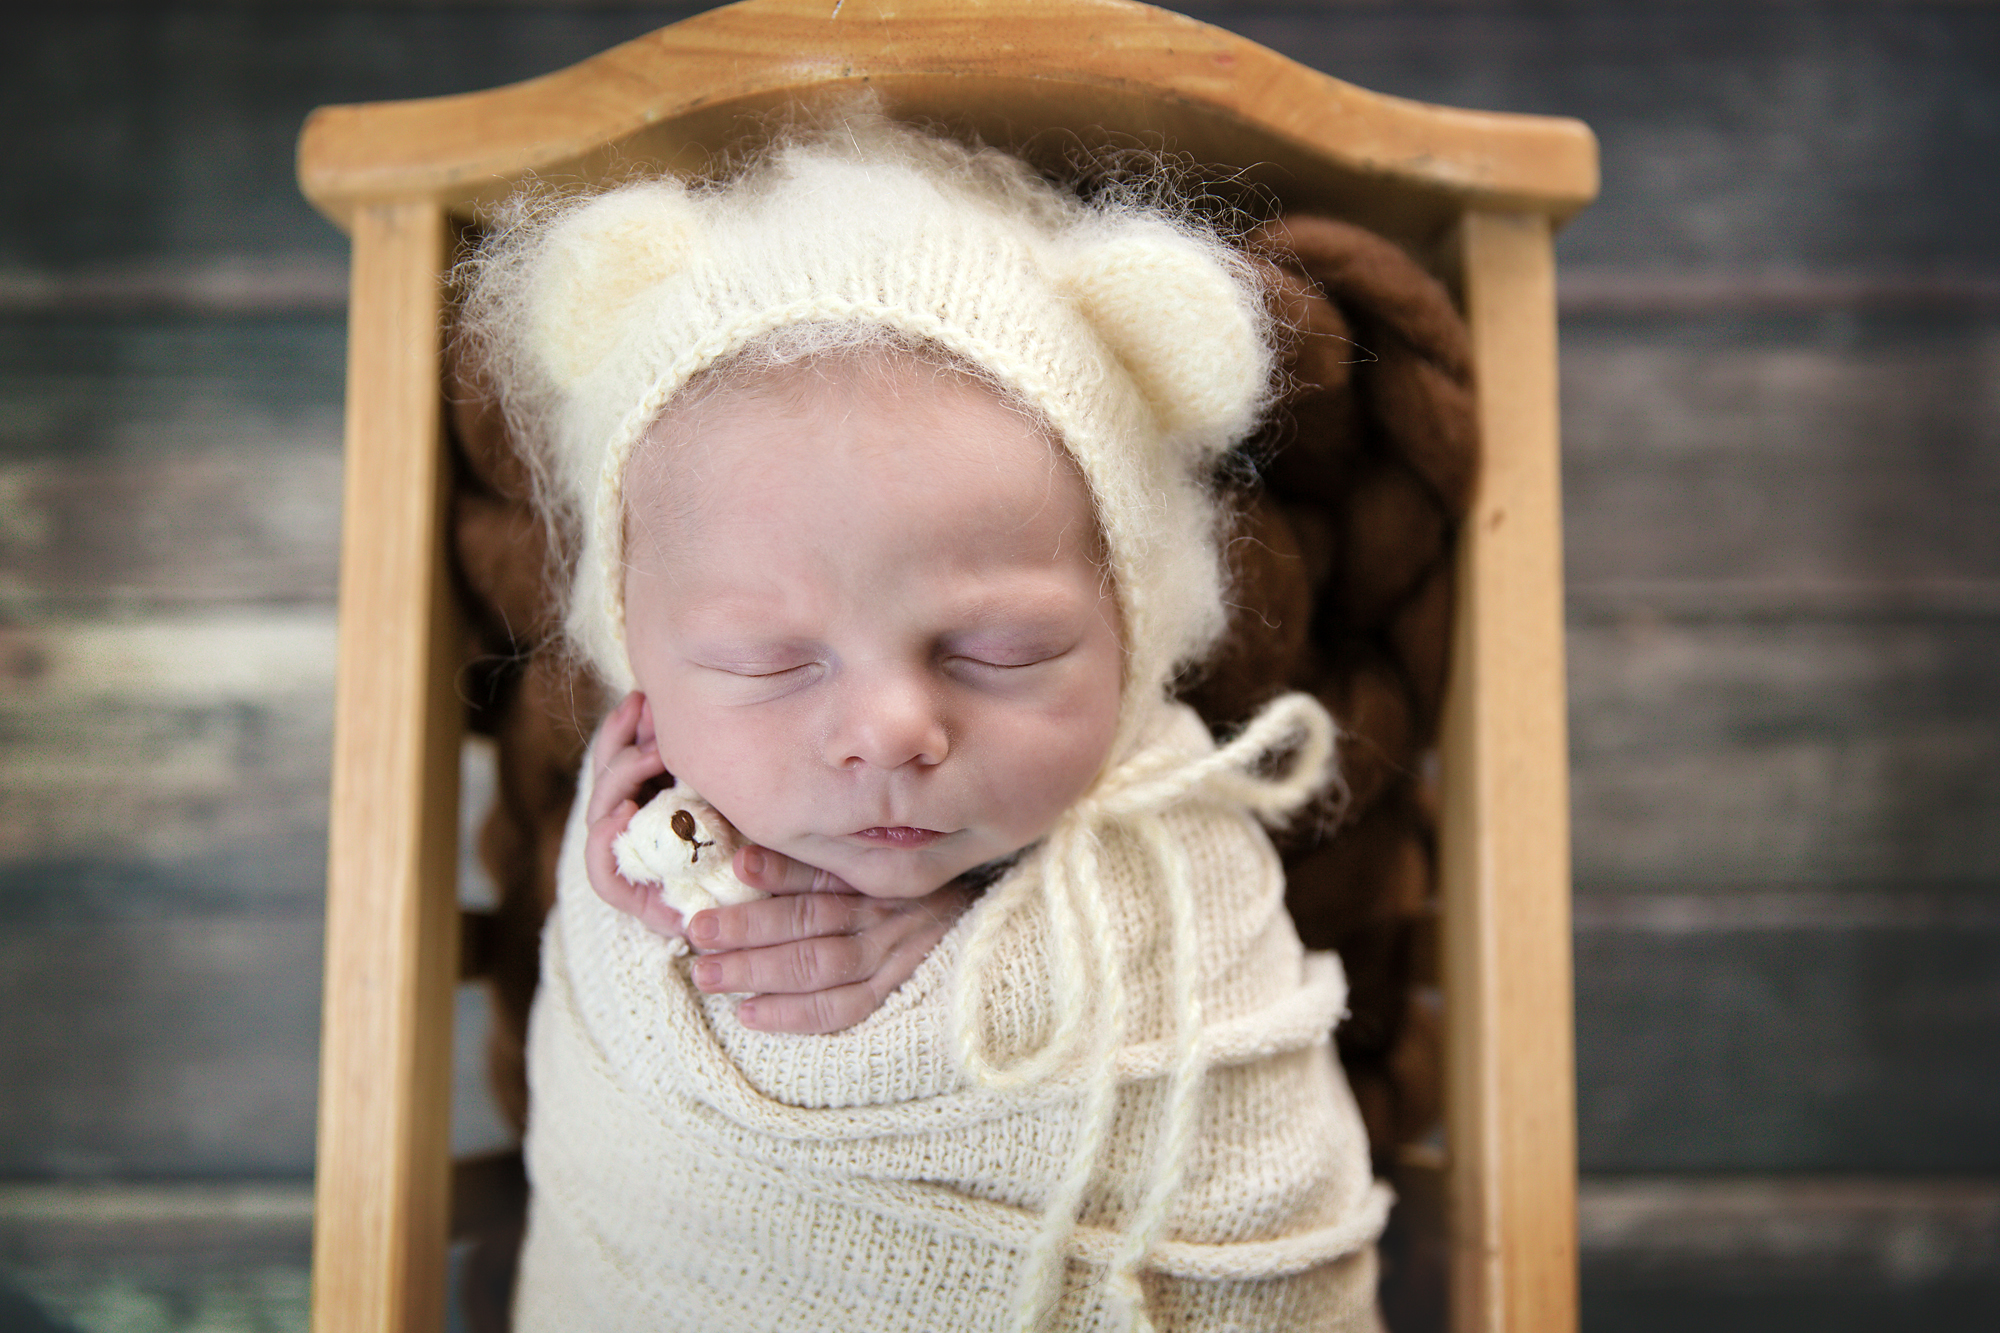 Newborn baby boy is wearing a bear hat and is holding a little tiny bear toy in his hands. Calgary newborn and baby photographer - Milashka Photography